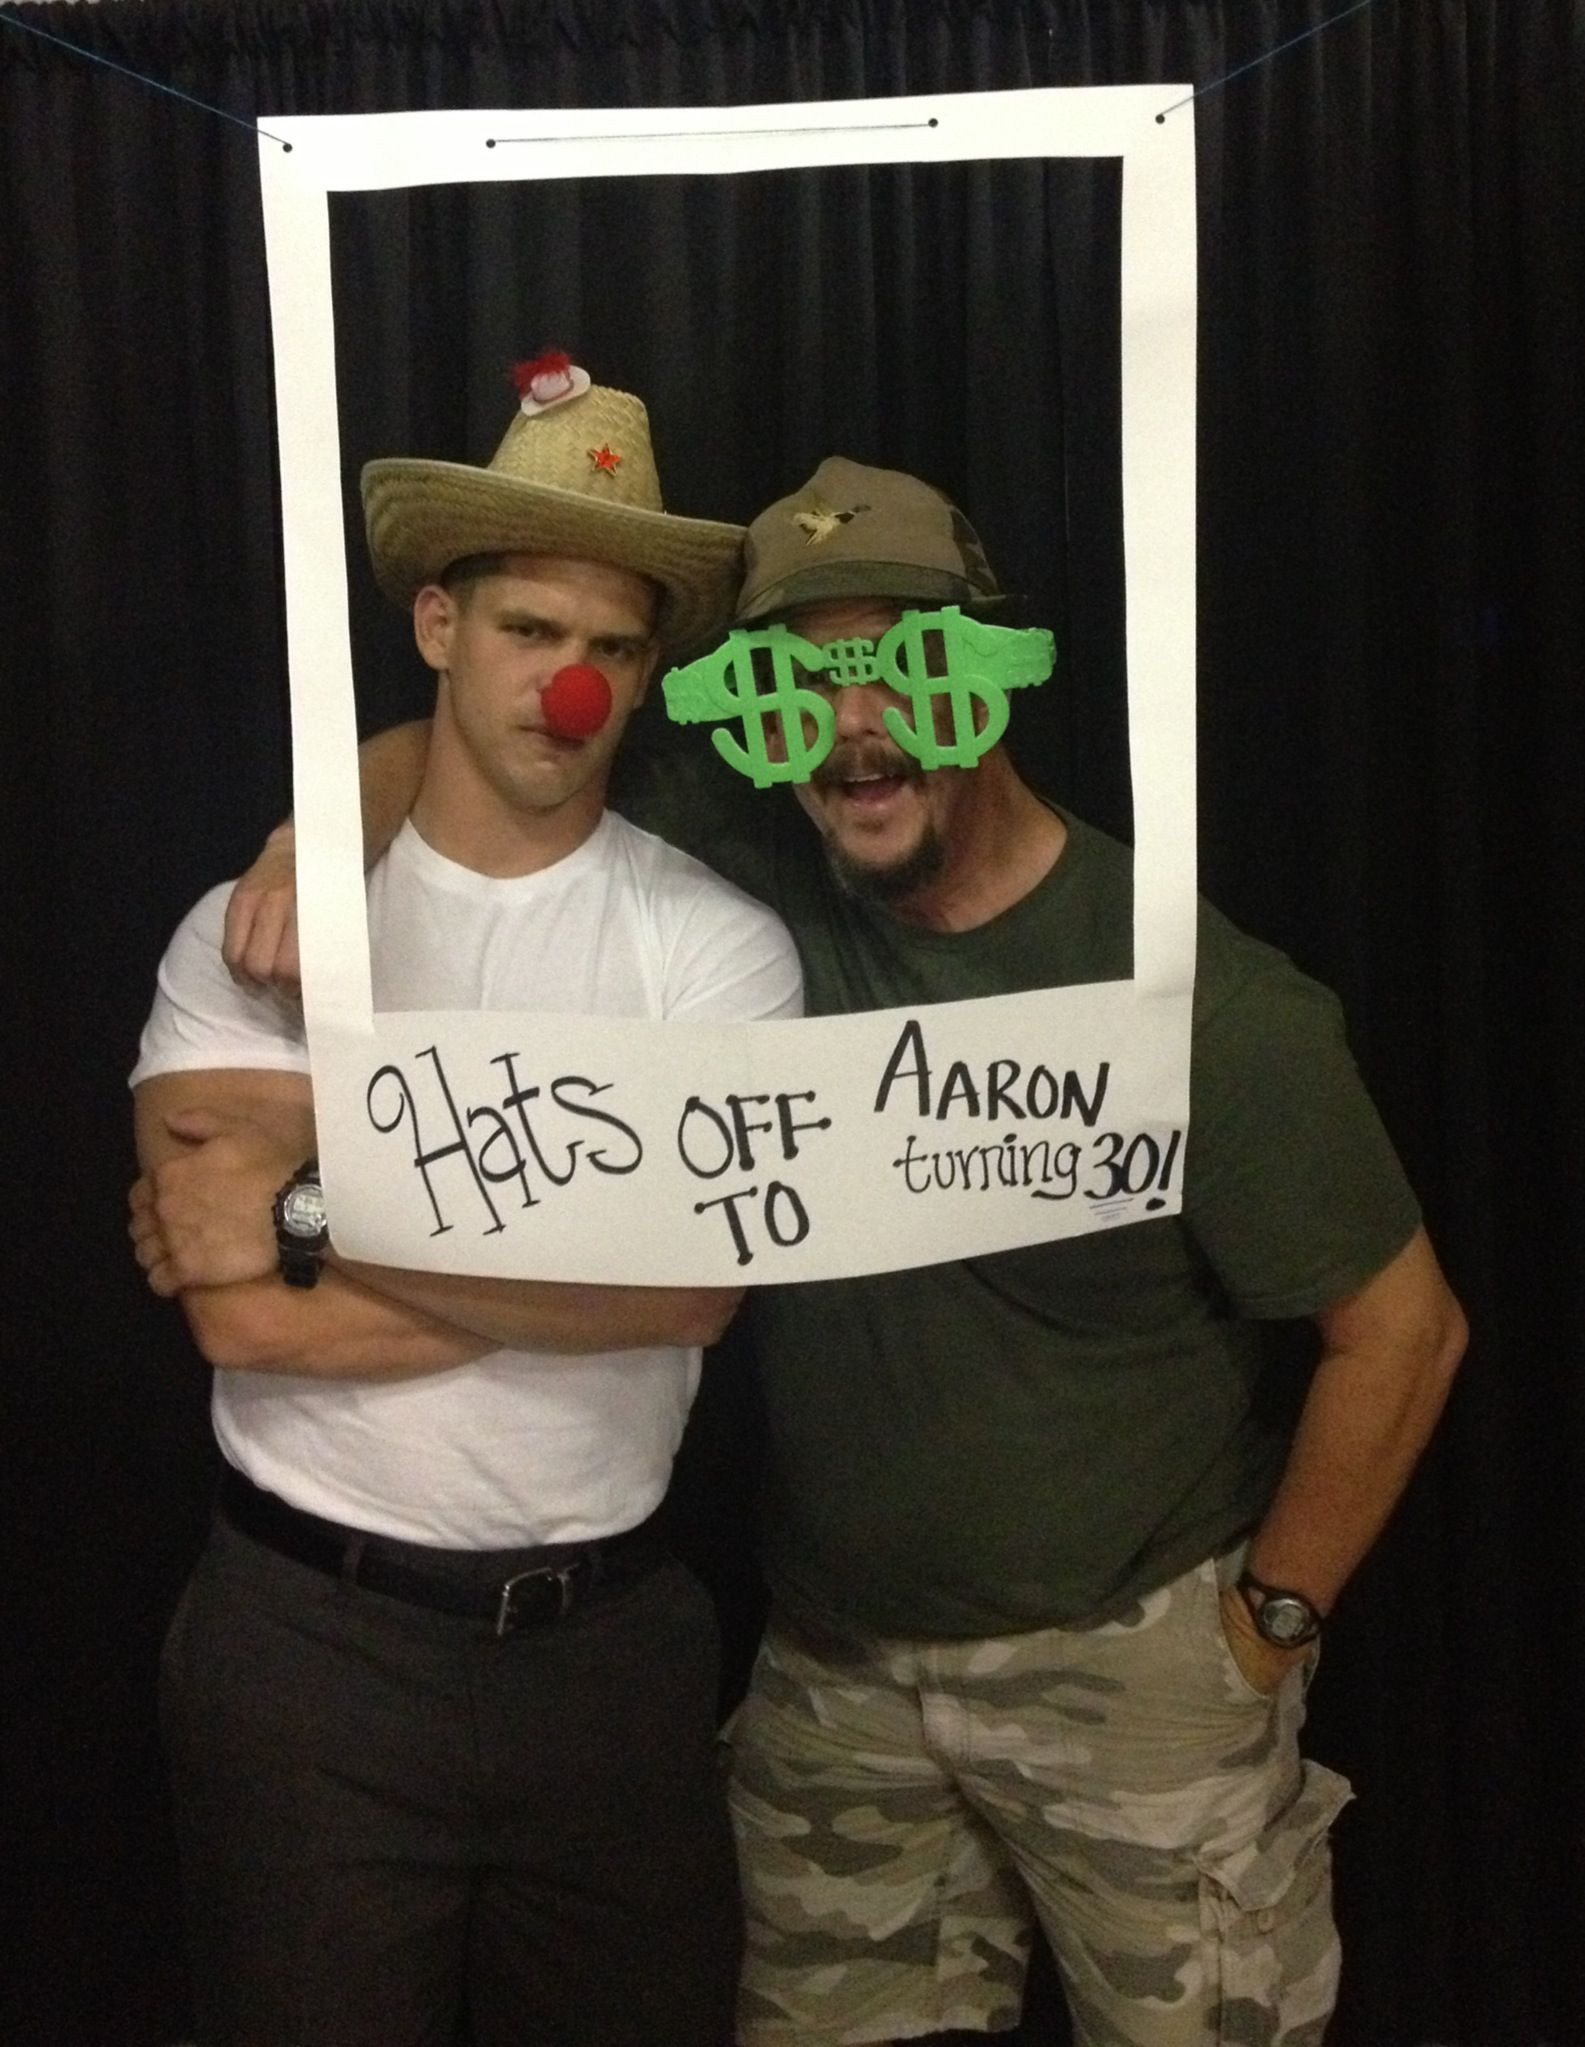 30th birthday theme we used, the photo booth was a fun success ...